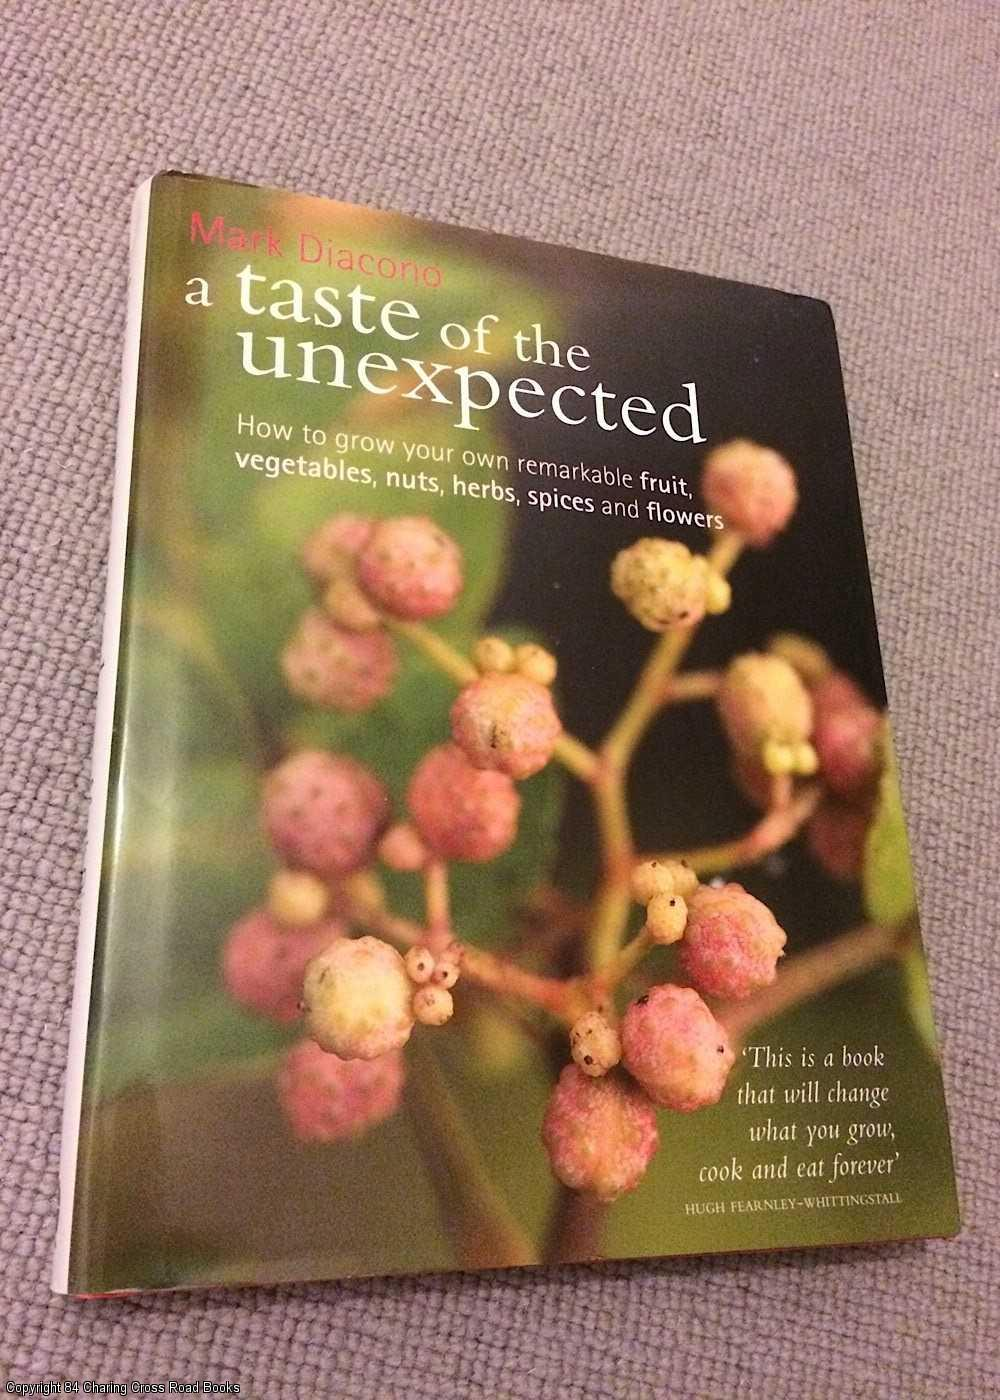 MARK DIACONO - A Taste of the Unexpected